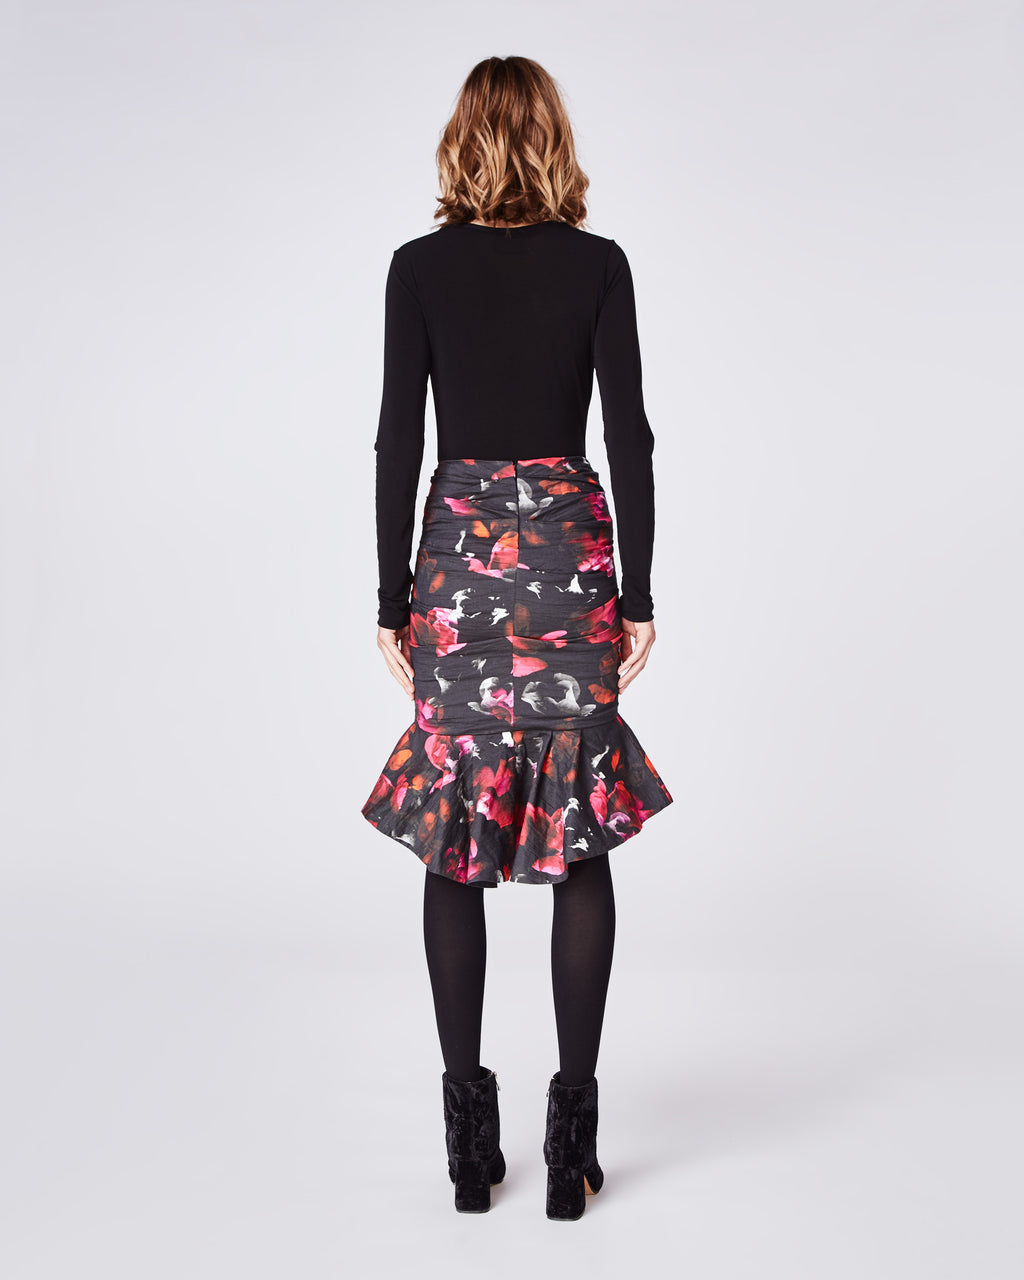 BH10418 - FRAGMENT FLORAL RUFFLE HEM SKIRT - bottoms - skirts - This floral fitted skirt that features a ruffled hemline. Falling mid thigh, this skirt is finished with a concealed zipper for closure and unlined.